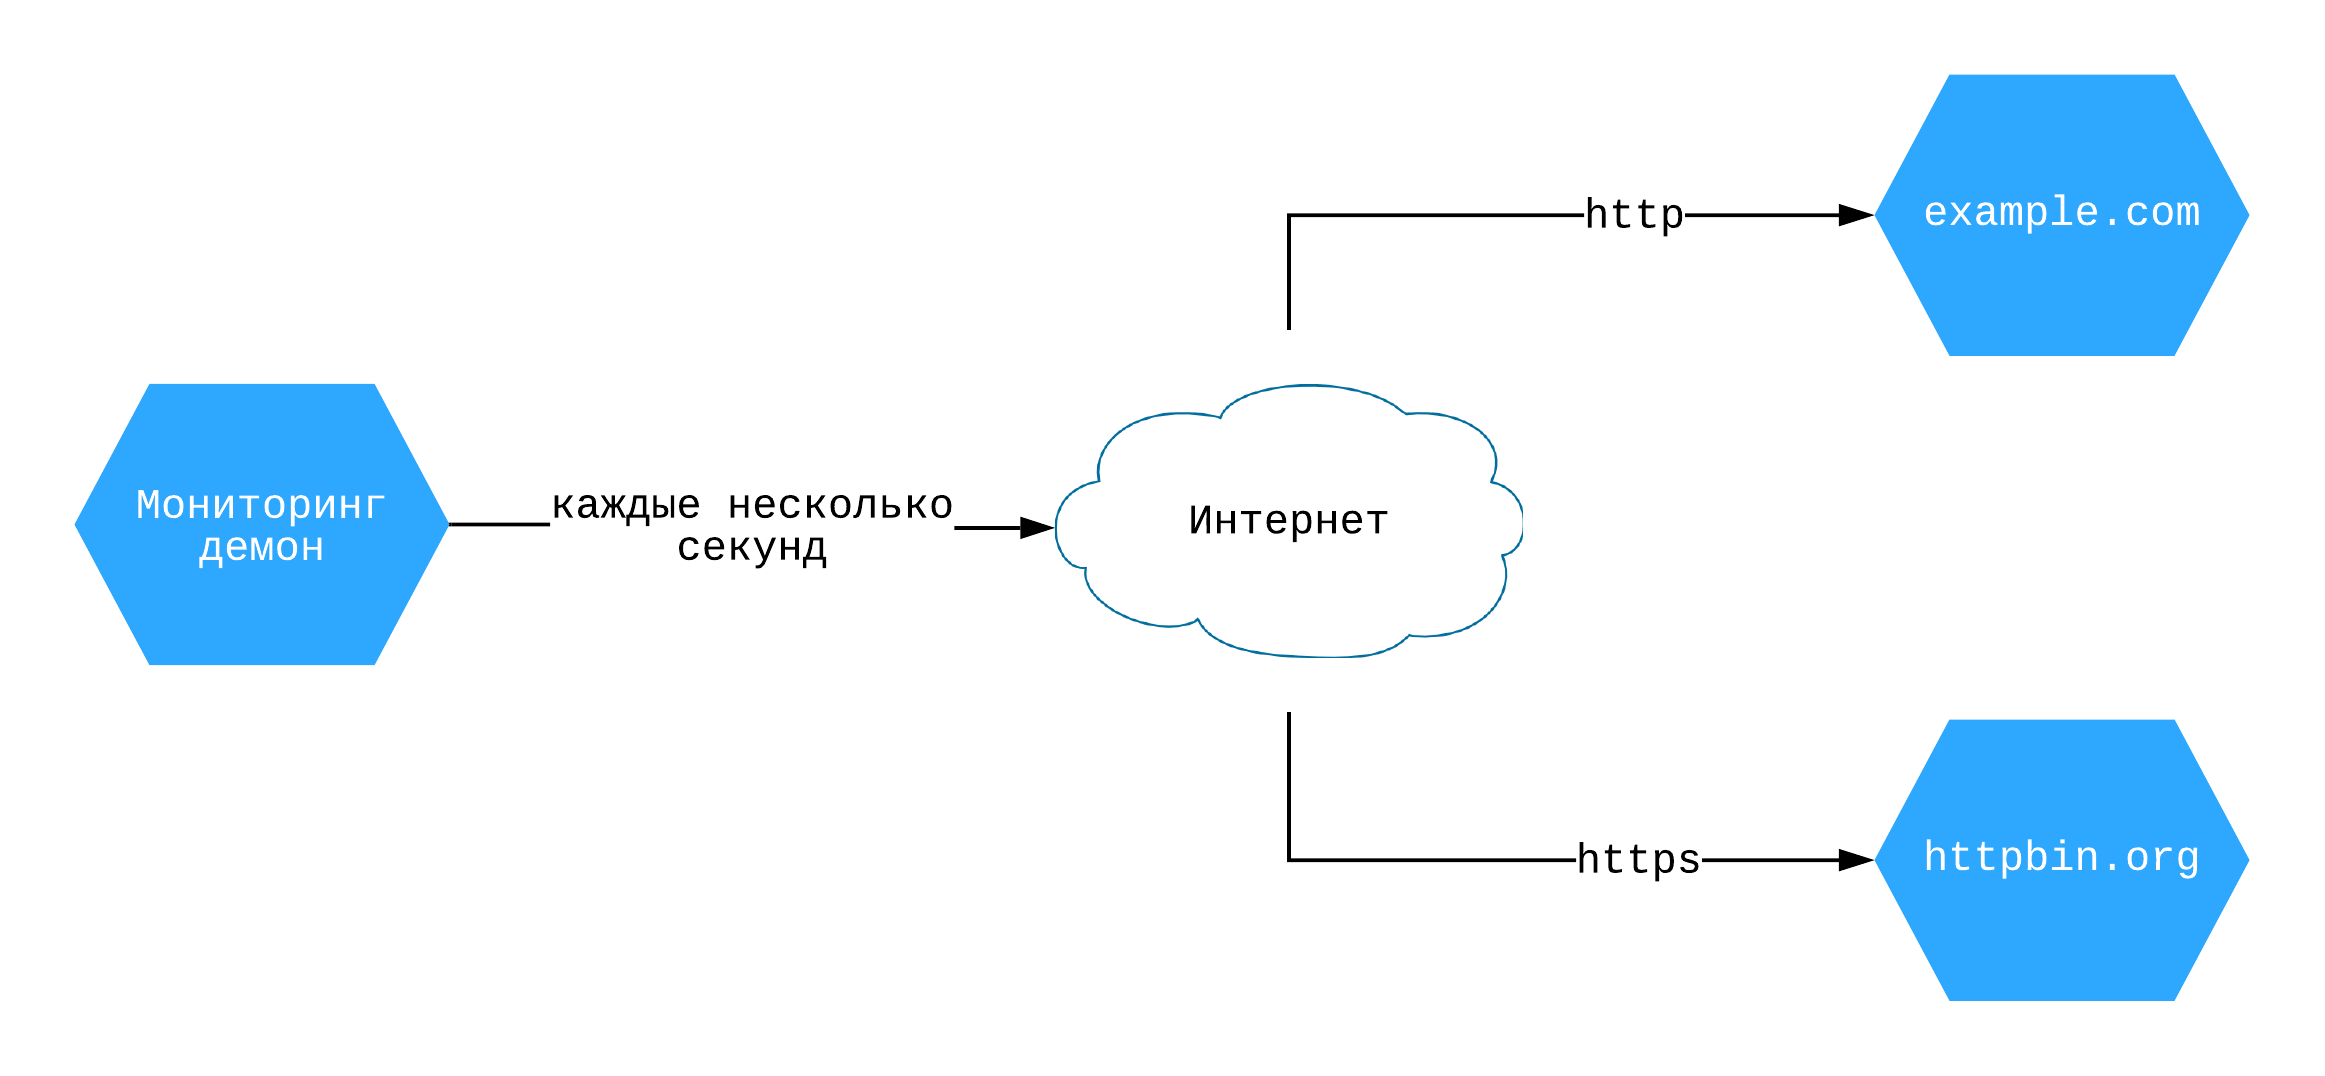 Мониторинг демон на Asyncio  Dependency Injector  руководство по применению dependency injection